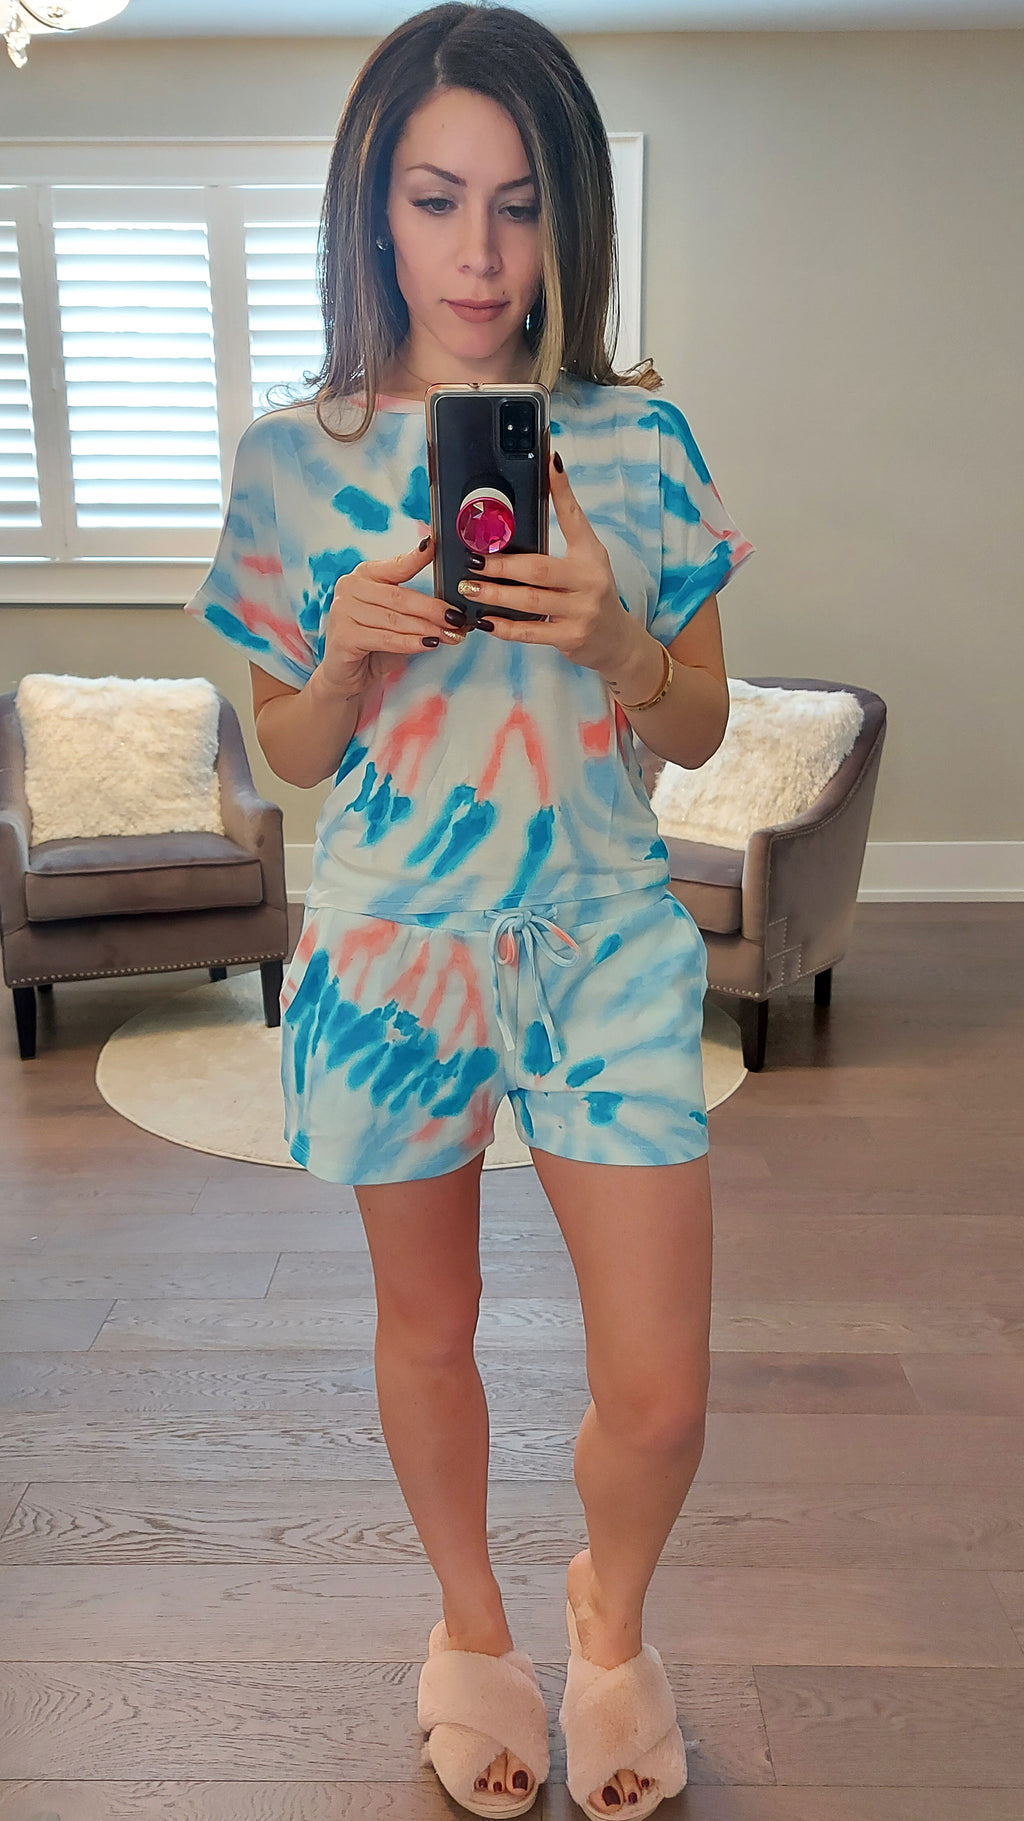 Ocean Swirl Tie Dye Lounge Set - Shorts